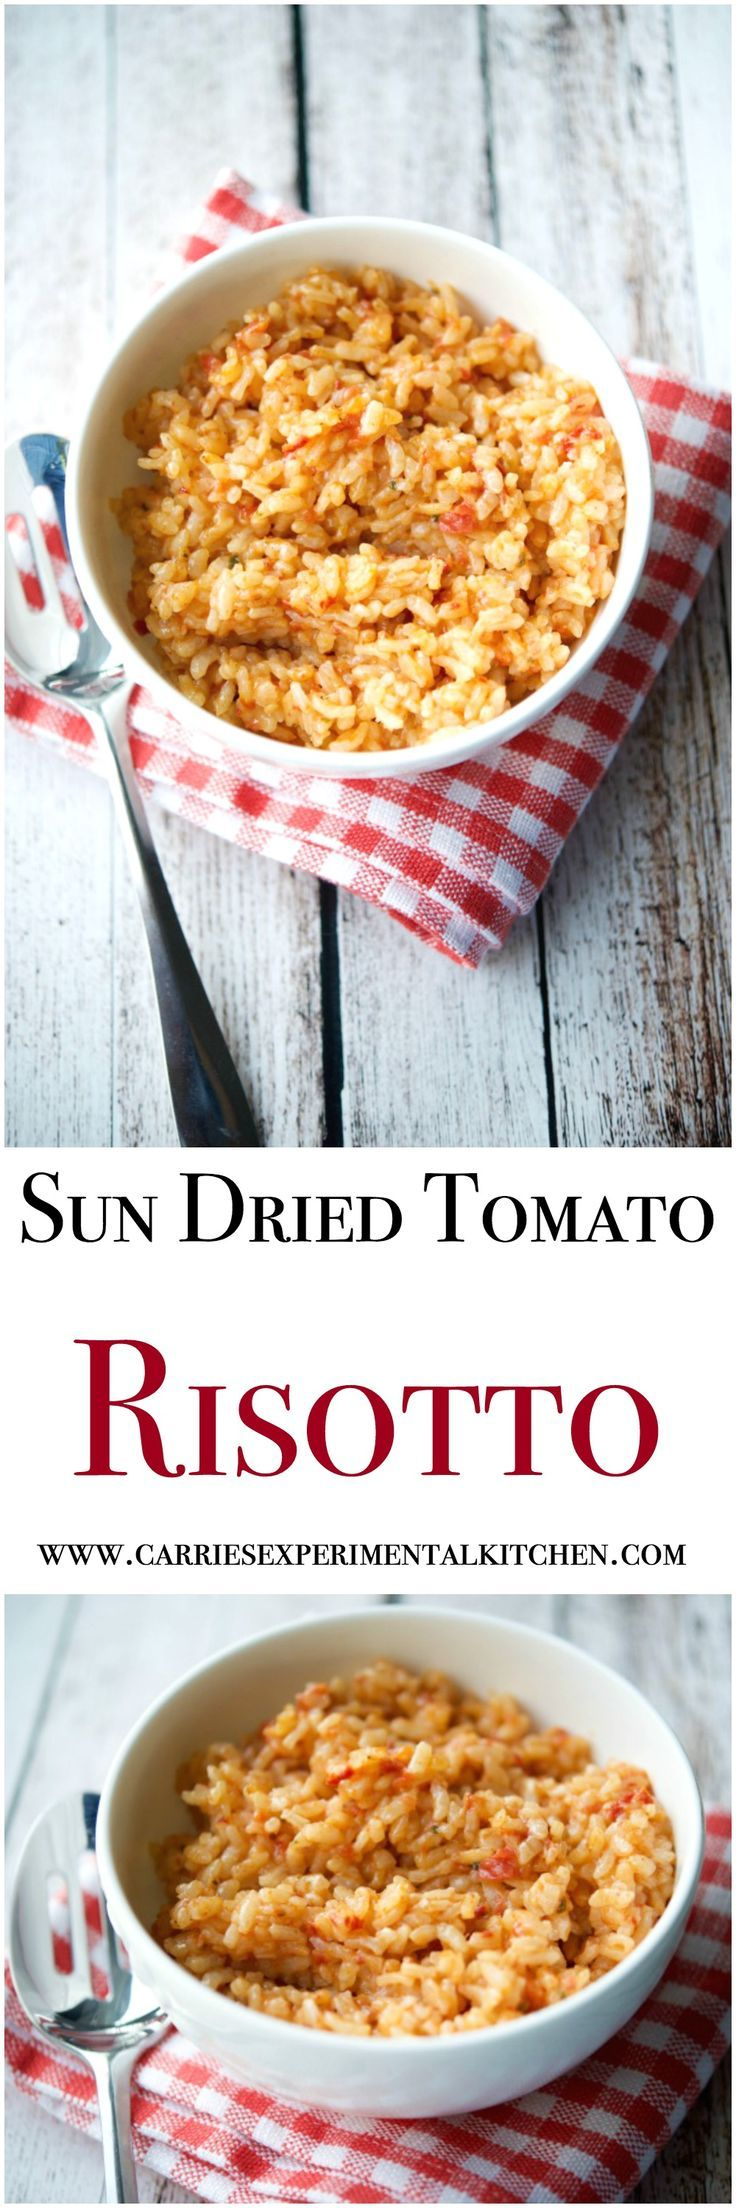 Tomato risotto, Sun dried tomatoes and Risotto on Pinterest